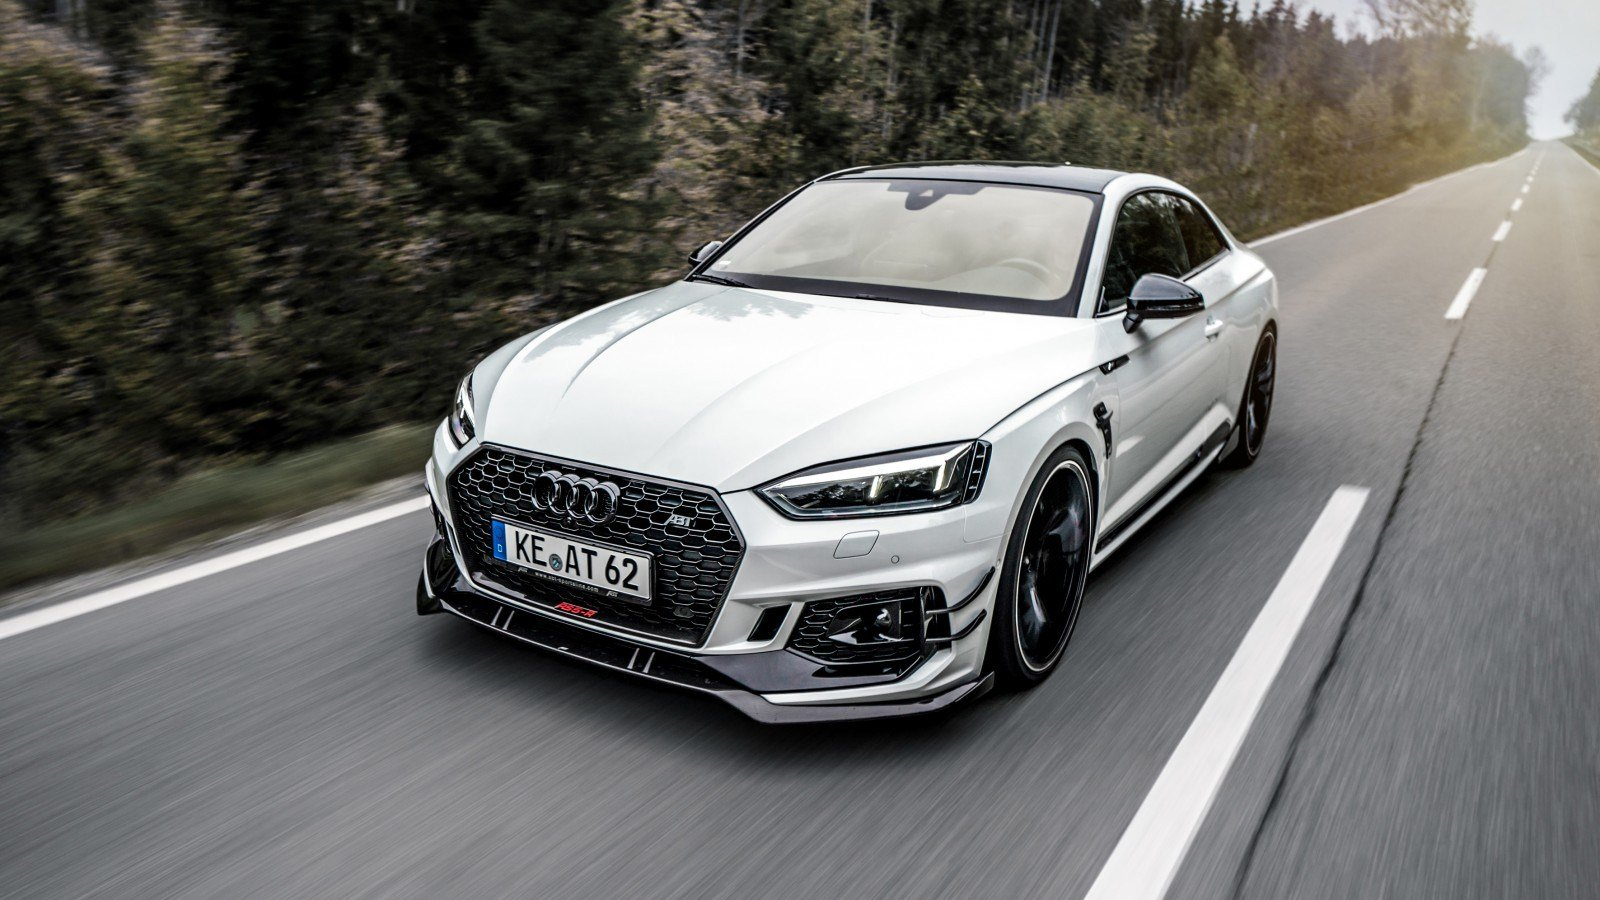 Latest Abt Audi Rs 5 R Coupe 2018 Wallpaper Hd Car Wallpapers Free Download